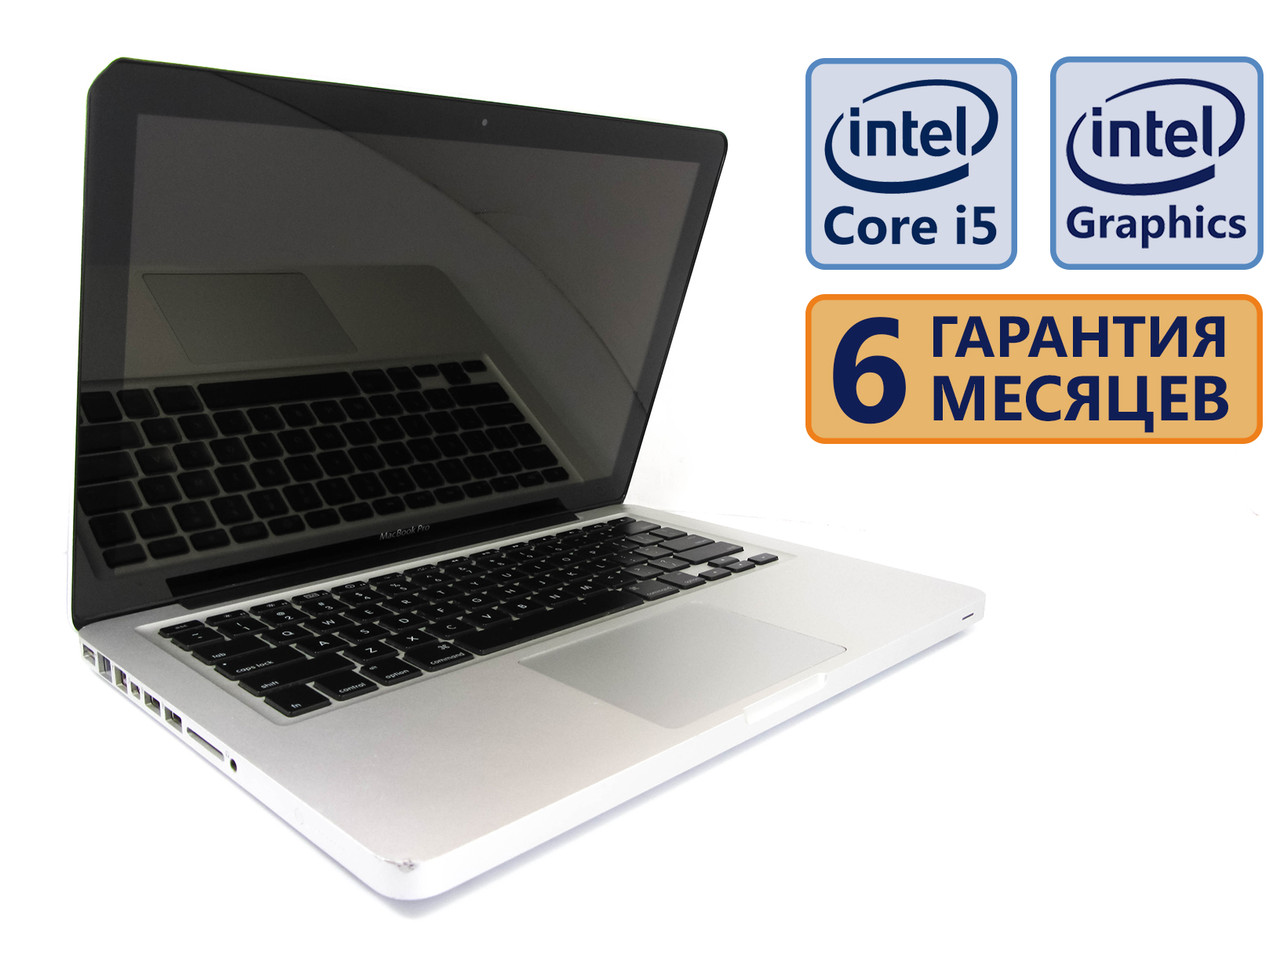 Ноутбук Apple Pro A1278 2010 13.3 (1280x800) /Intel Core i5-2415M (2x max2.9GHz)/RAM 8Gb /SSD 240Gb/АКБ 3 ч. 20 мин. / Сост.8.5/10 БУ, фото 1